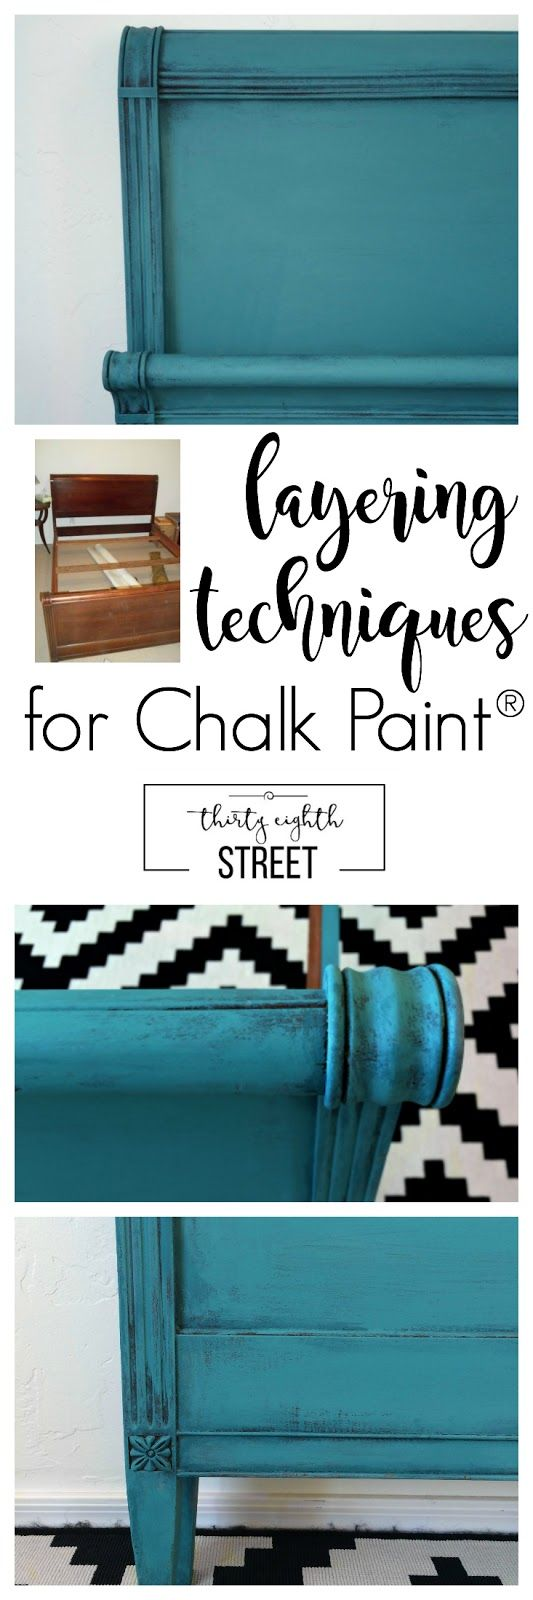 Furniture painting ideas techniques - Layering Paint Techniques To Create The Perfect Patina Distressed Weathered Or Farm House Look